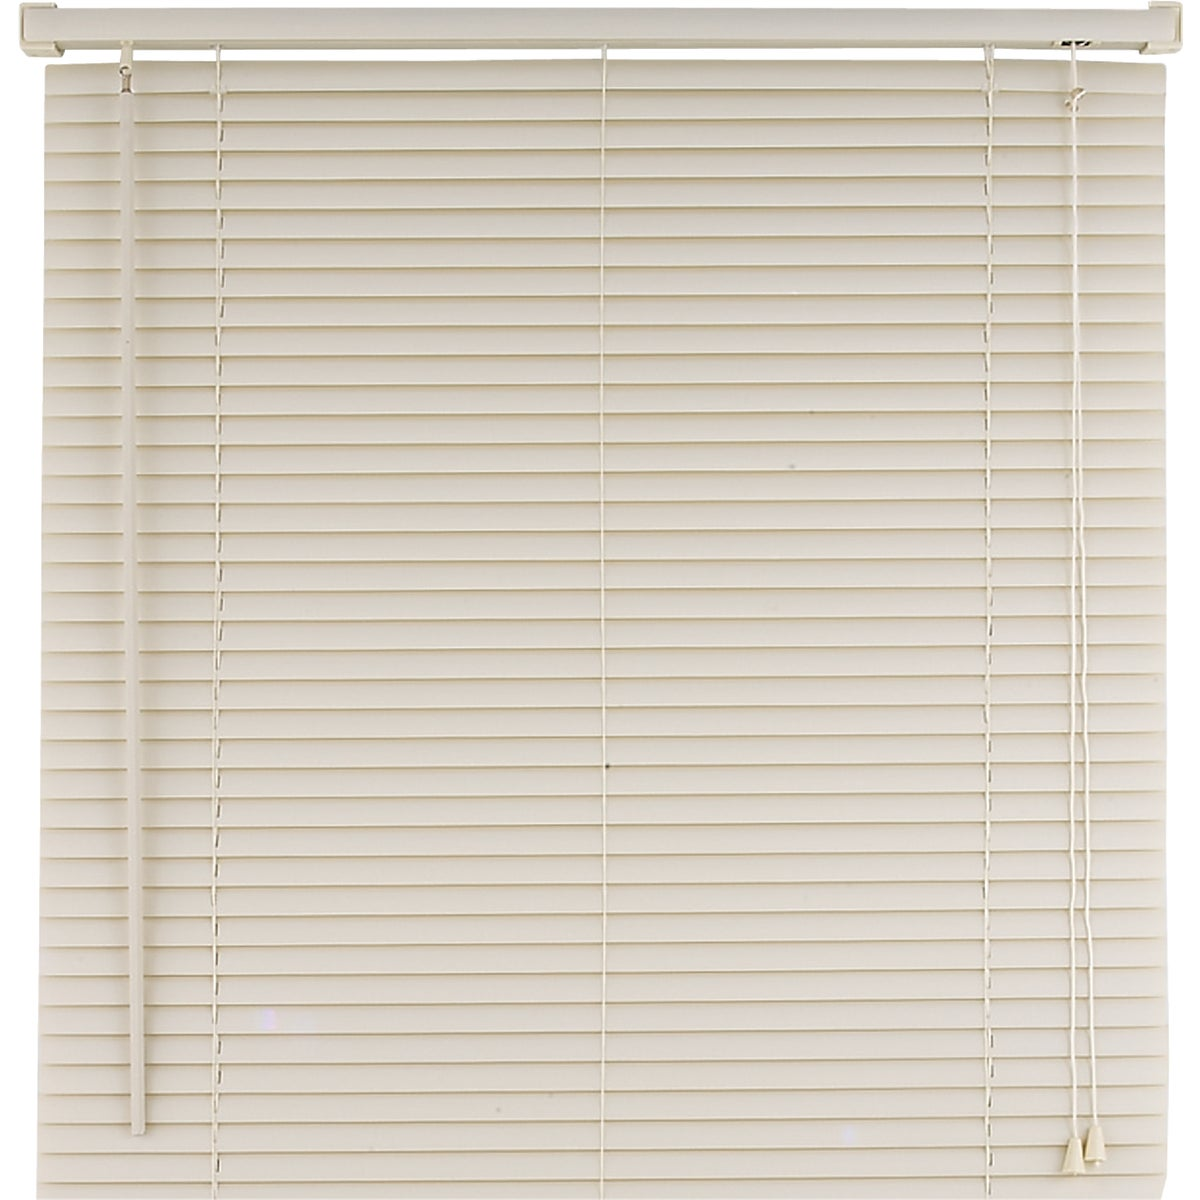 23X42 ALABASTER BLIND - 15291 by Lotus Wind Incom